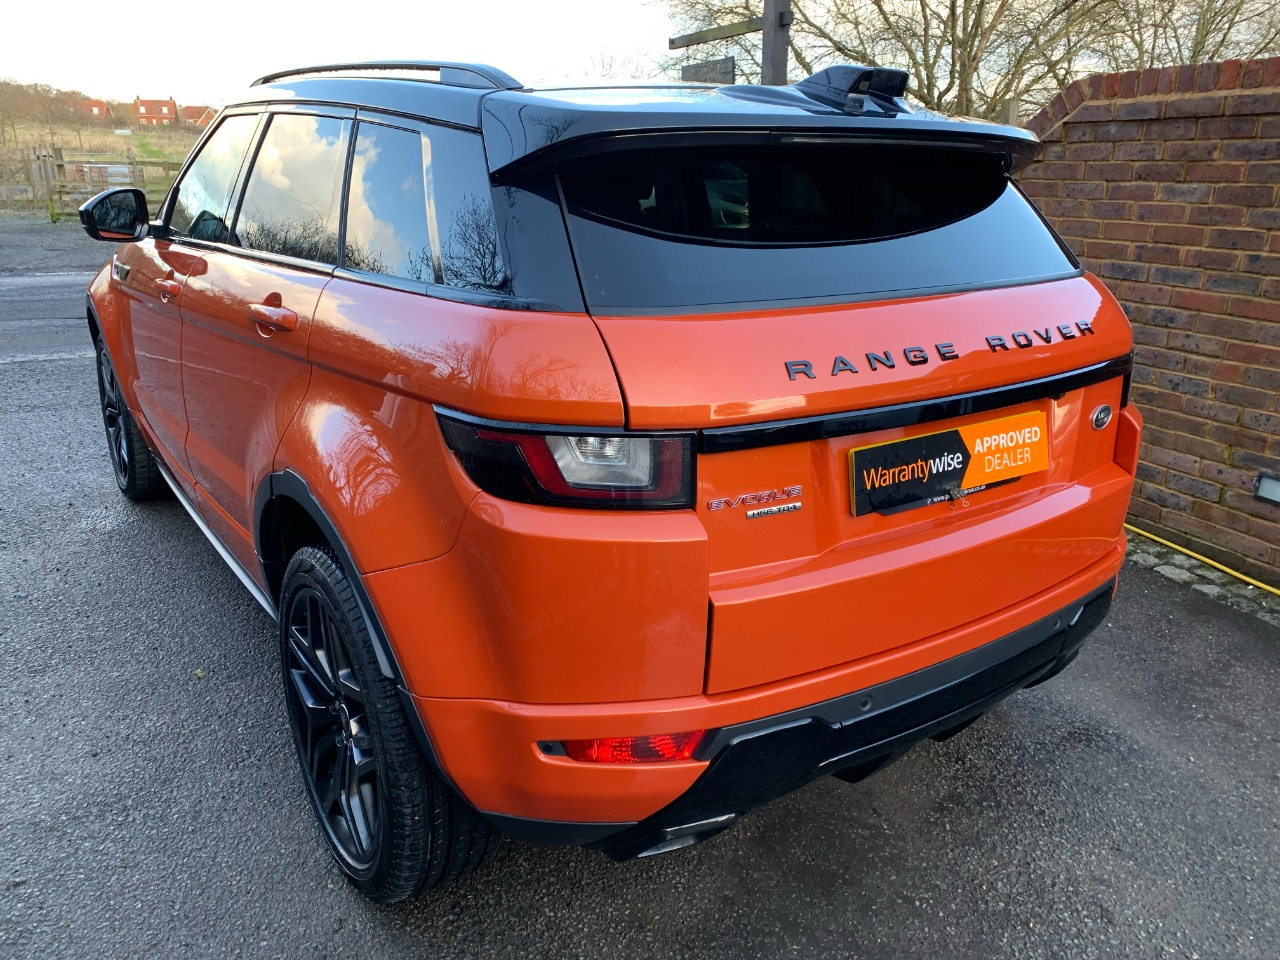 2016 Land Rover Range Rover Evoque 2.0 TD4 HSE Dynamic 5dr Auto + Black Pack + Pan Roof